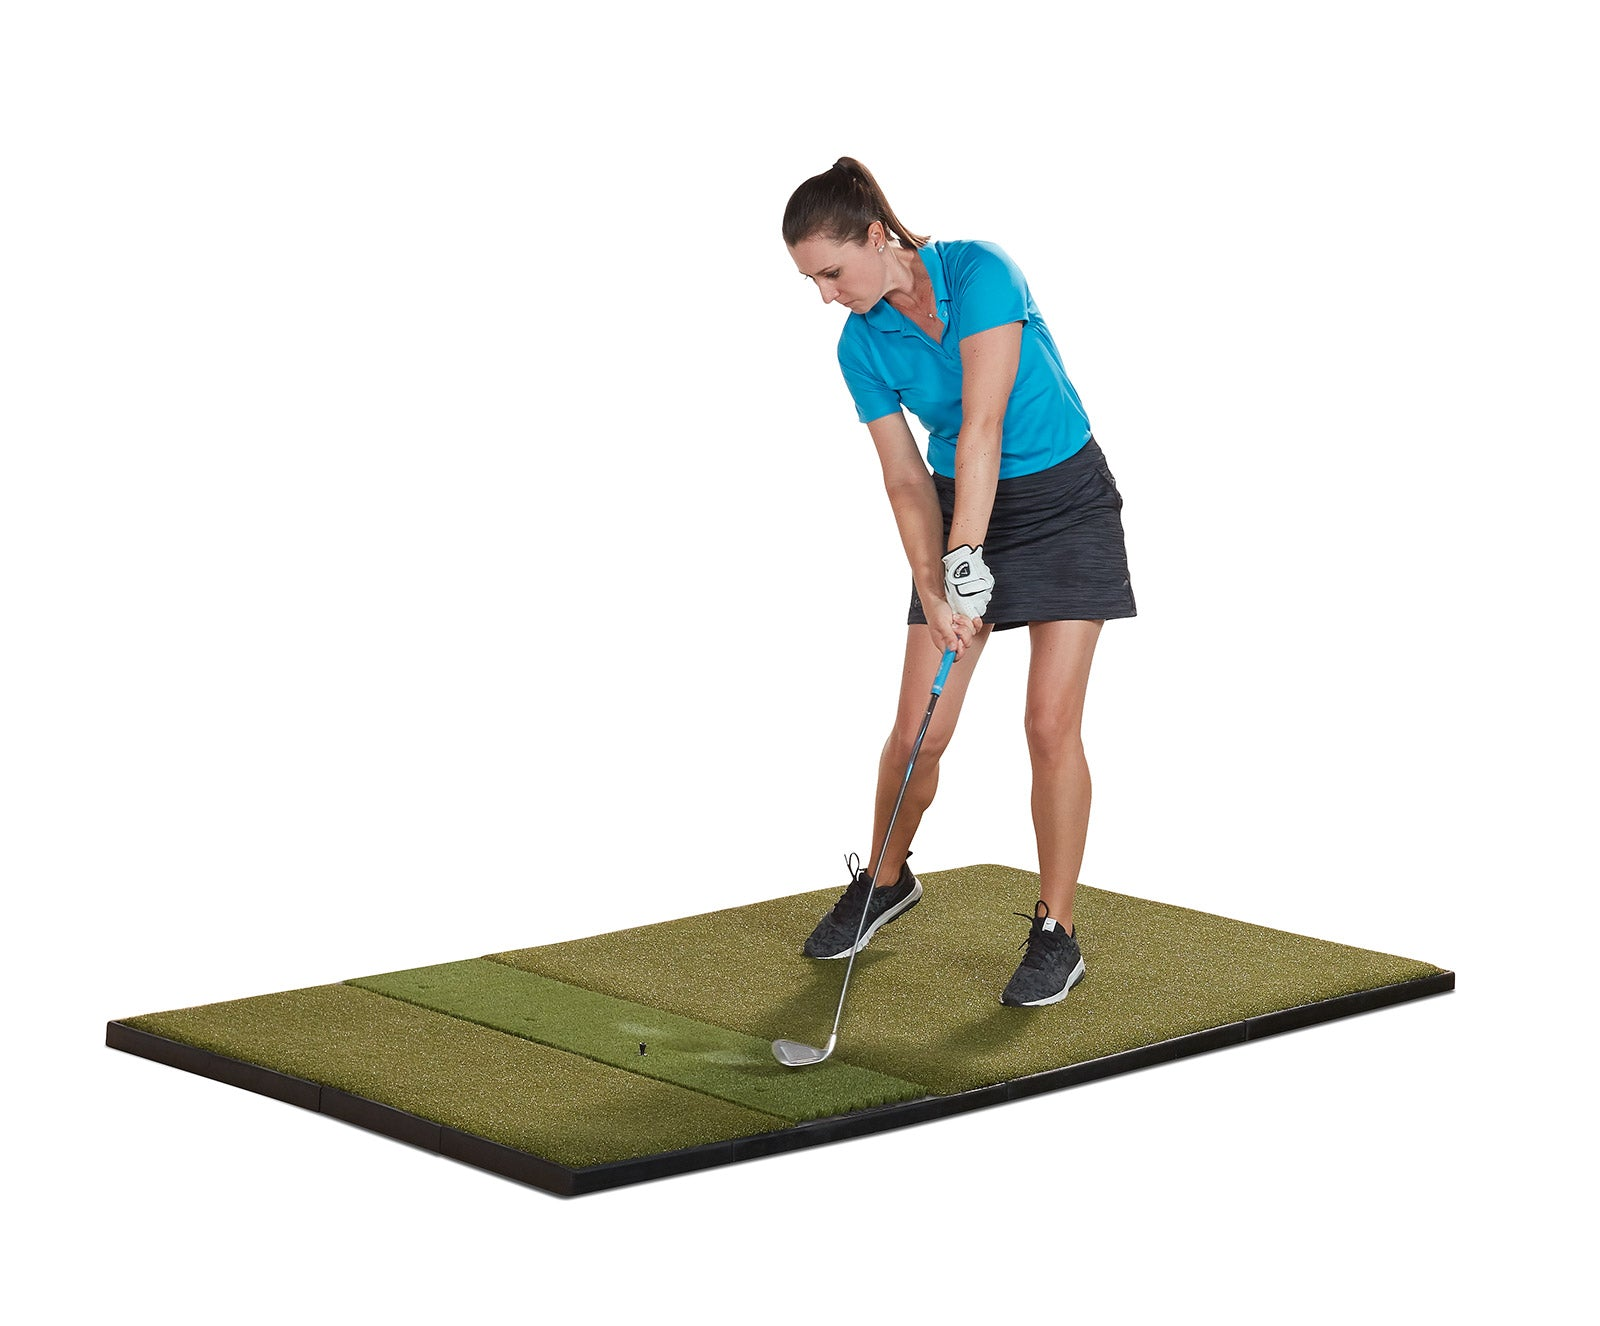 7'x4' Single-Hitting Studio Mat